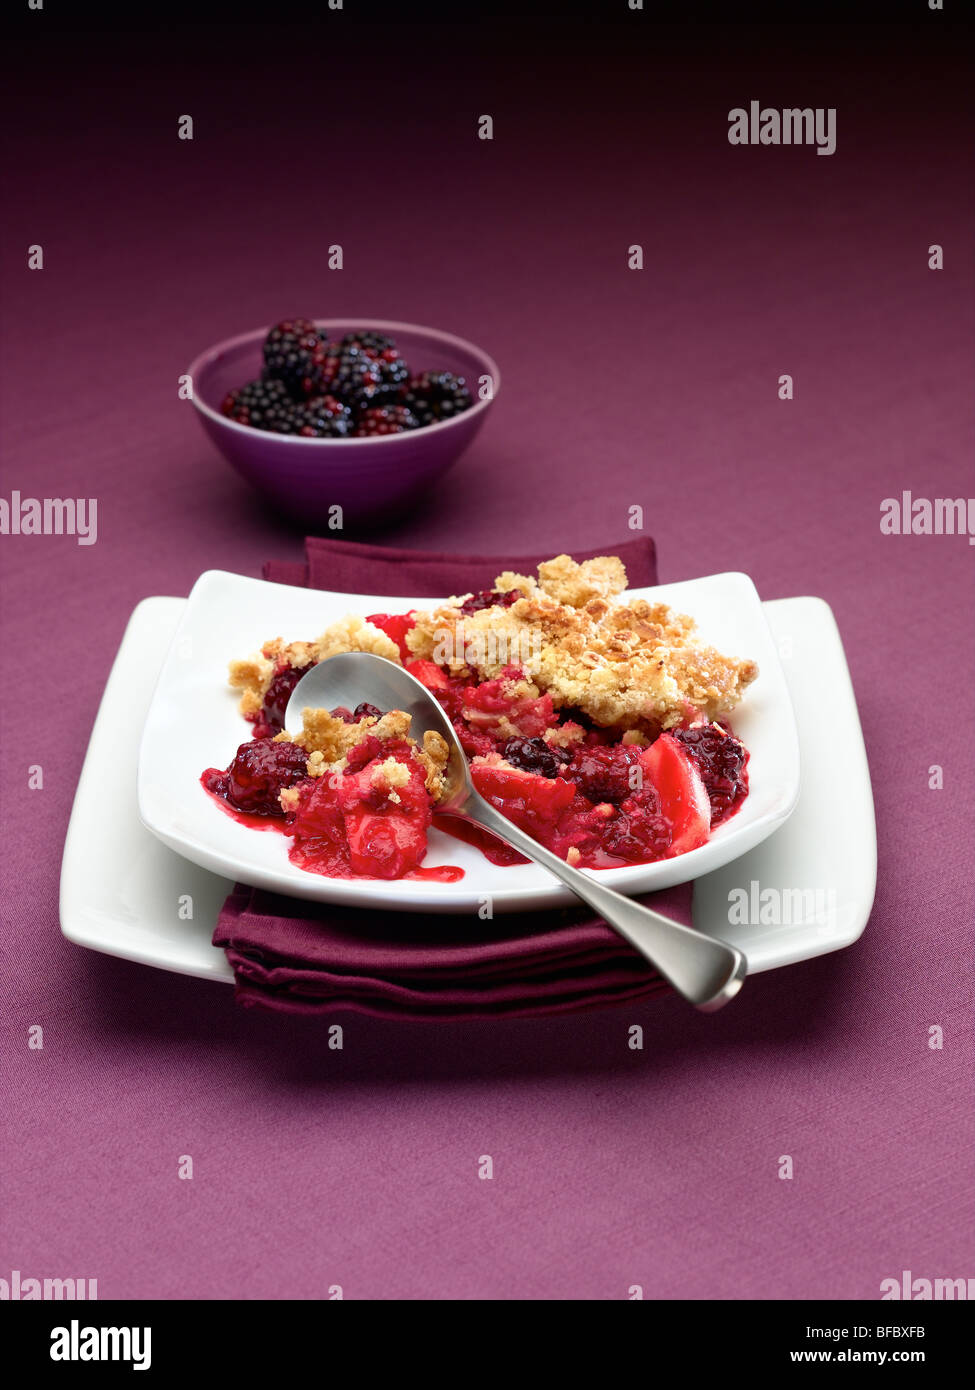 blackberry and apple crumble - Stock Image